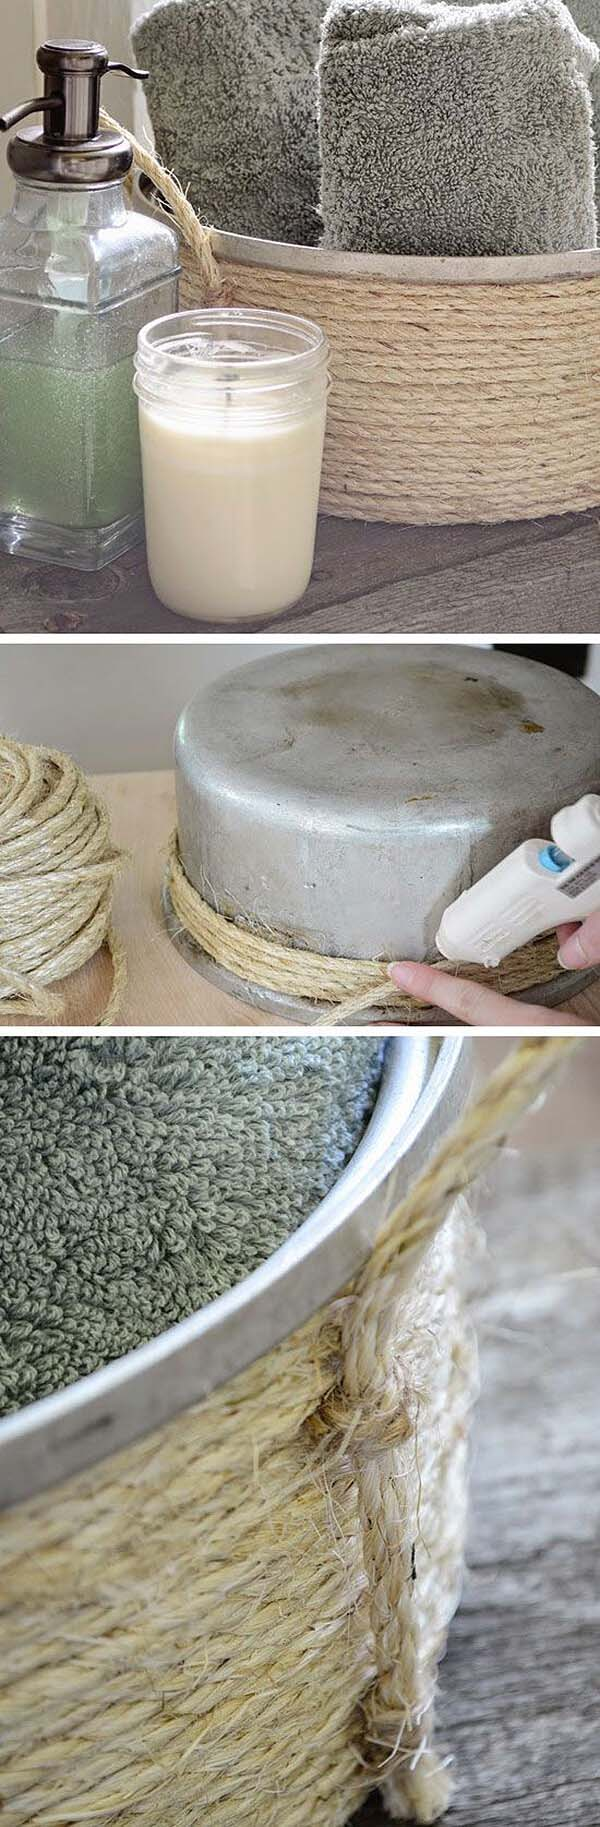 Creating A Basket Out Of An Old Kitchen Pot #rustic #storage #organization #decorhomeideas